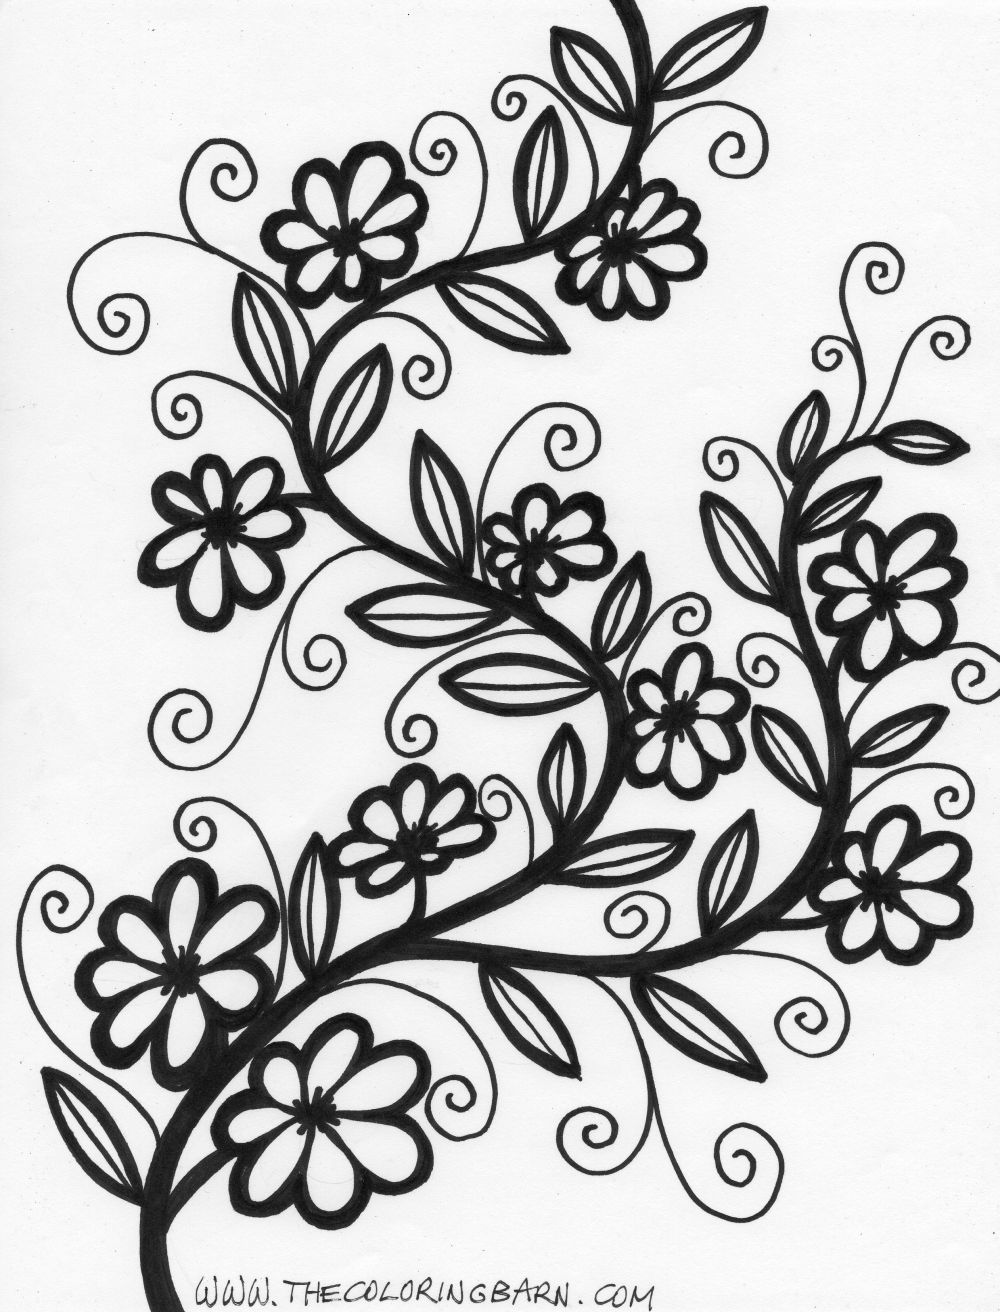 Printable coloring pages for adults flowers - Flower Flower Coloring Pages For Adults